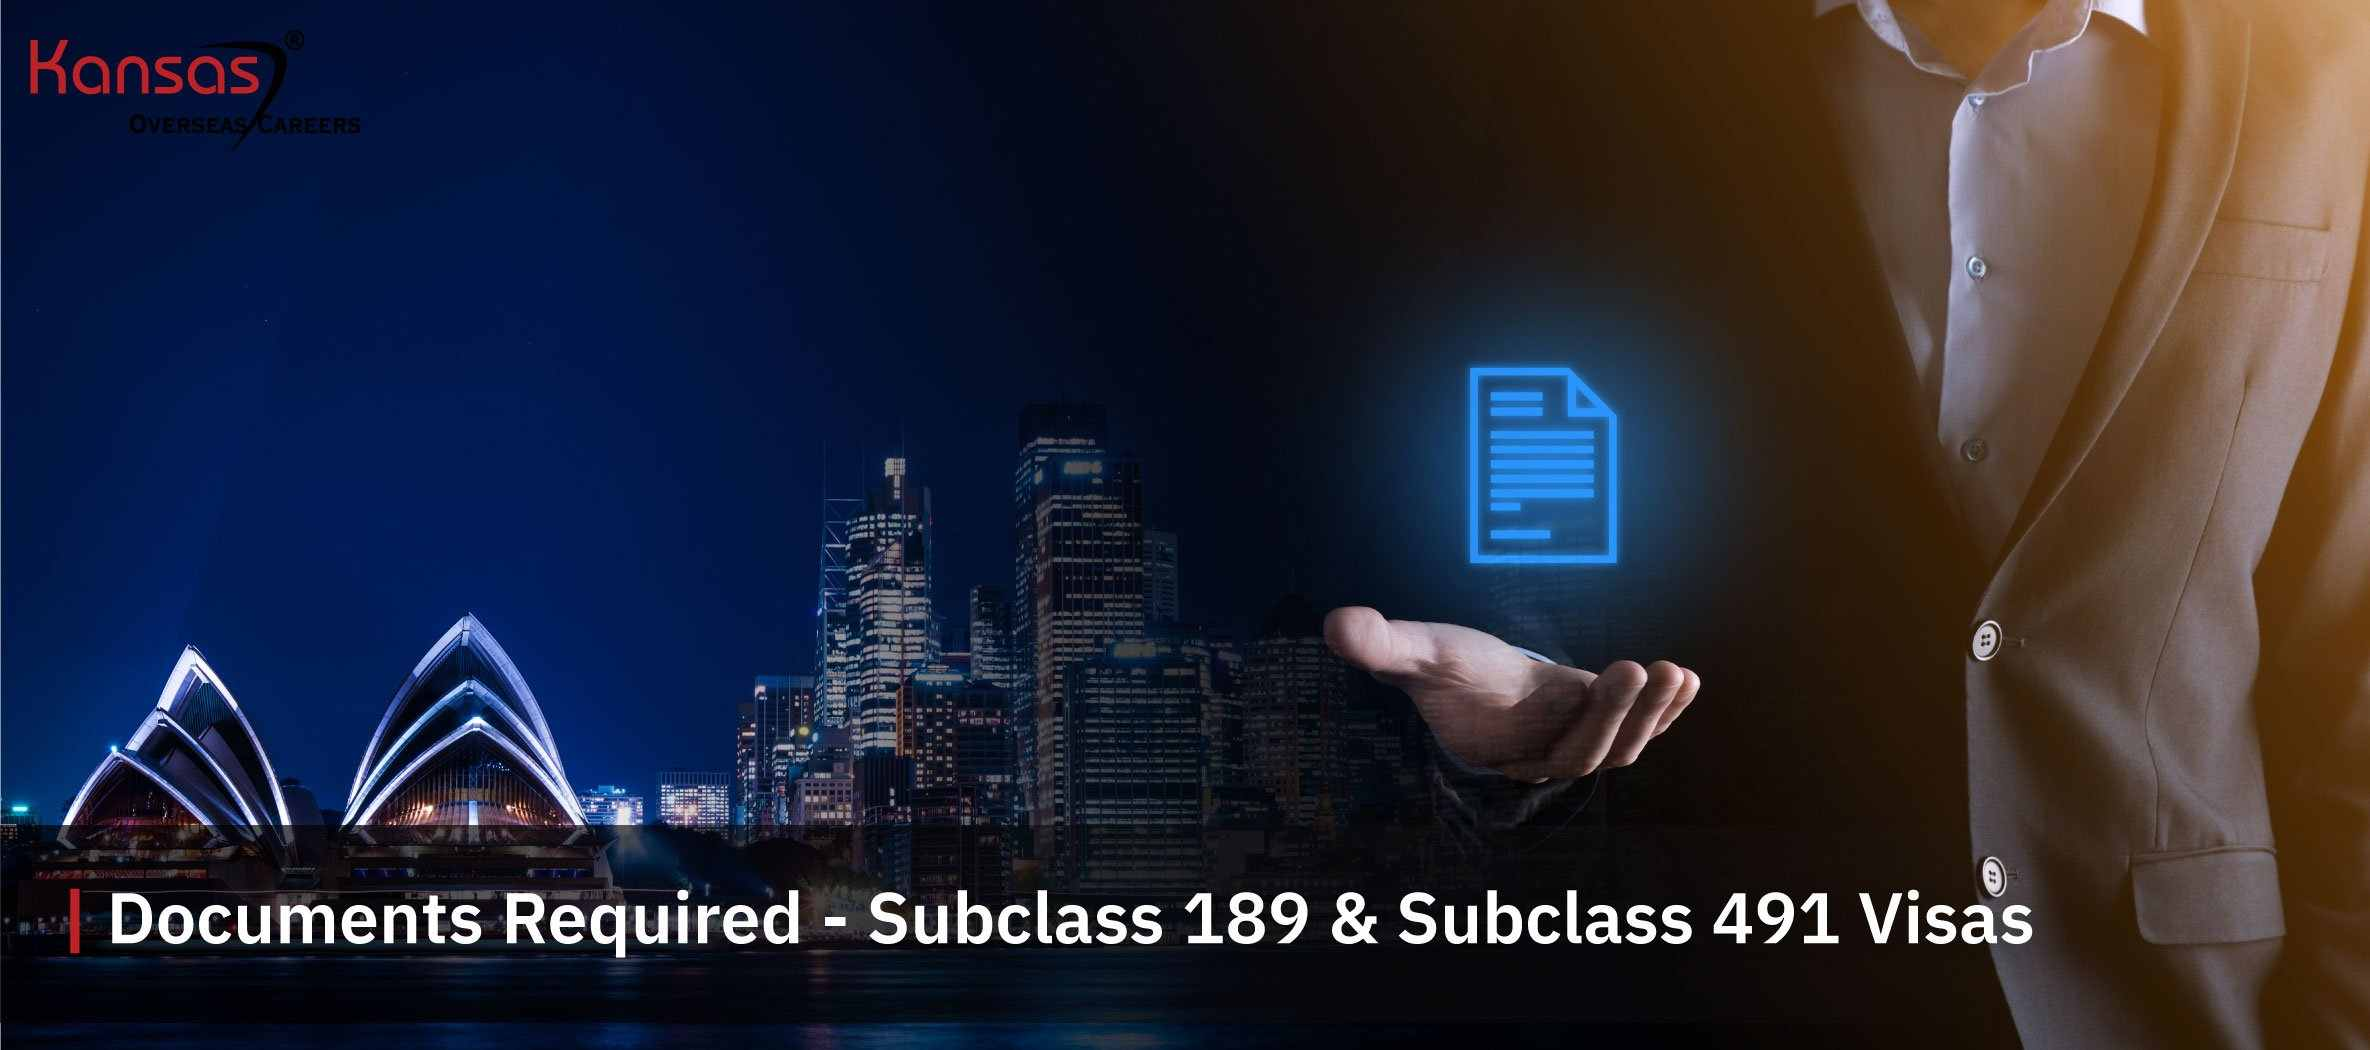 Documents-Required-with-Subclass-189-&-Subclass-491-Visas